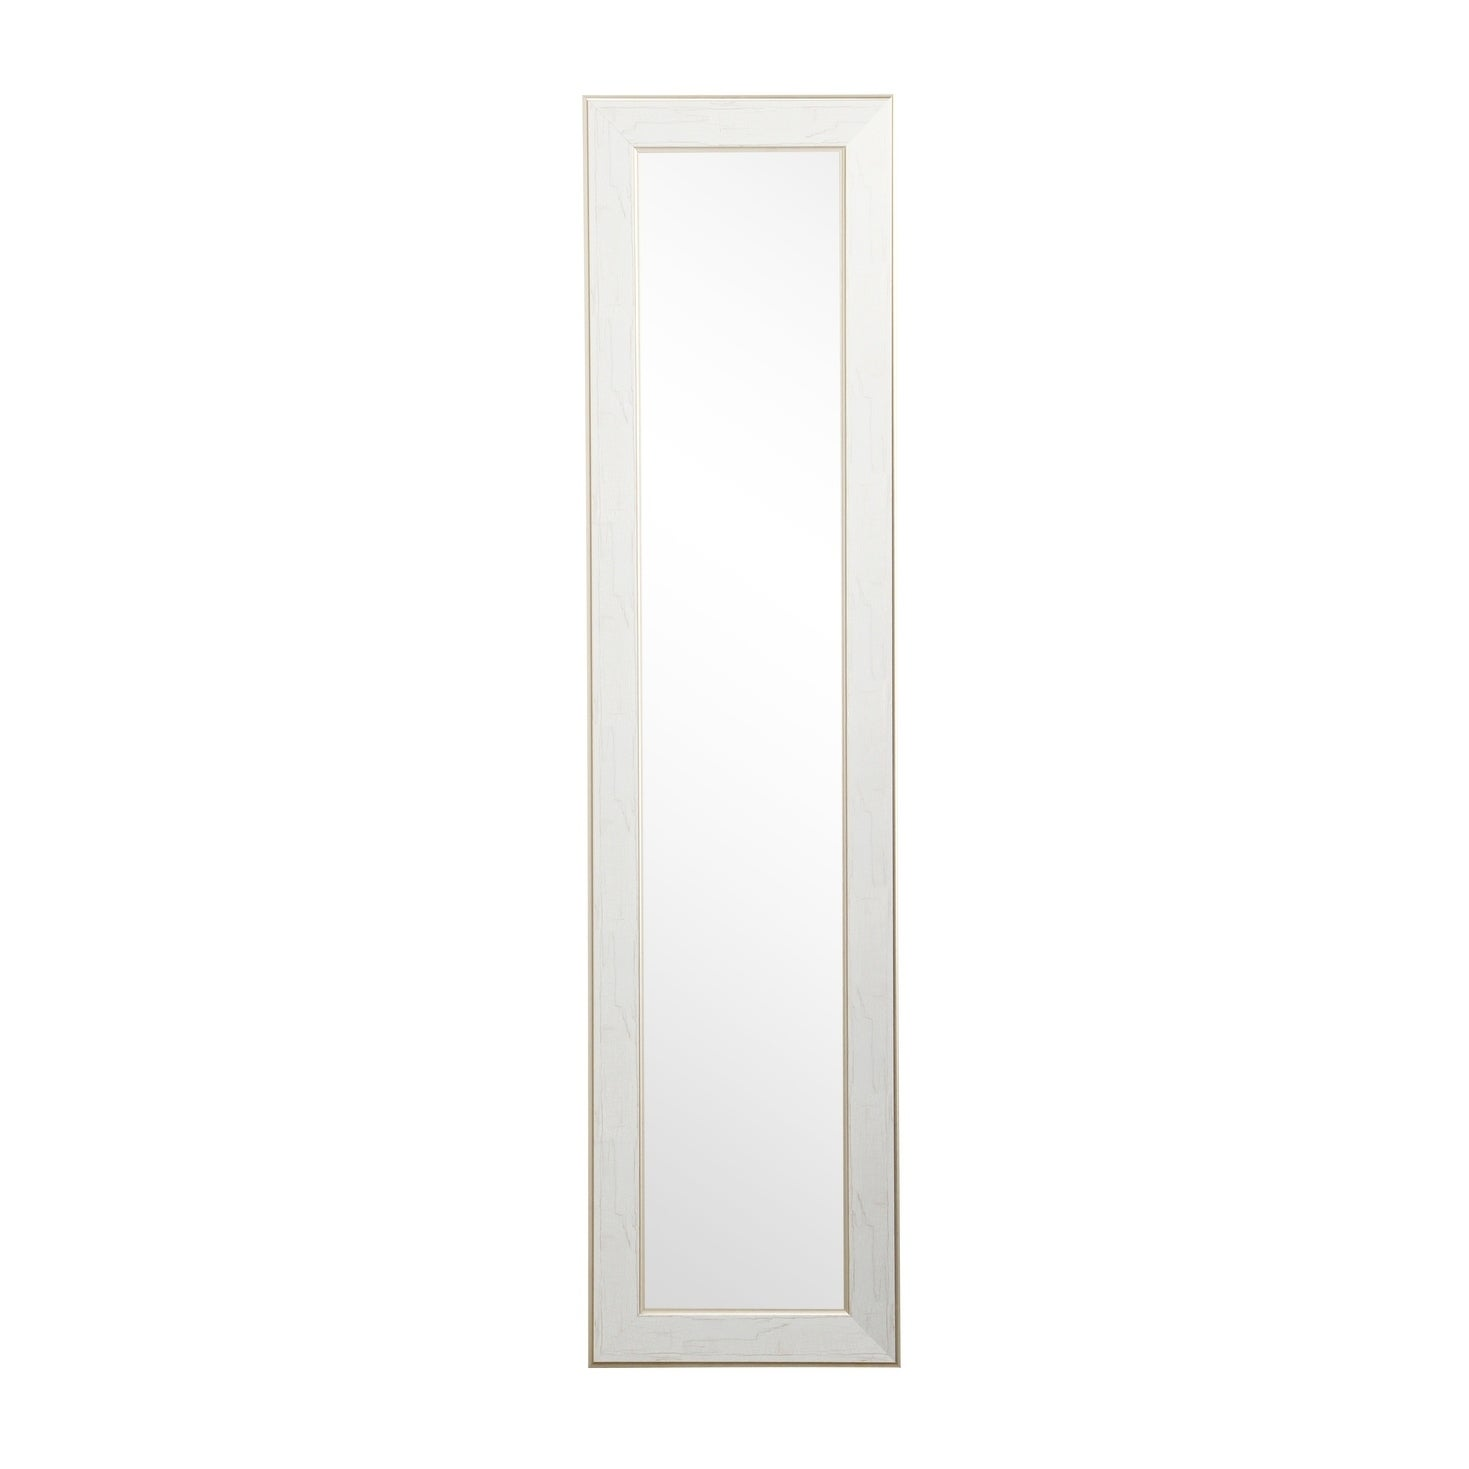 Gold Trimmed Legacy Slim Floor Mirror White Cracked Gold On Sale Overstock 23050394